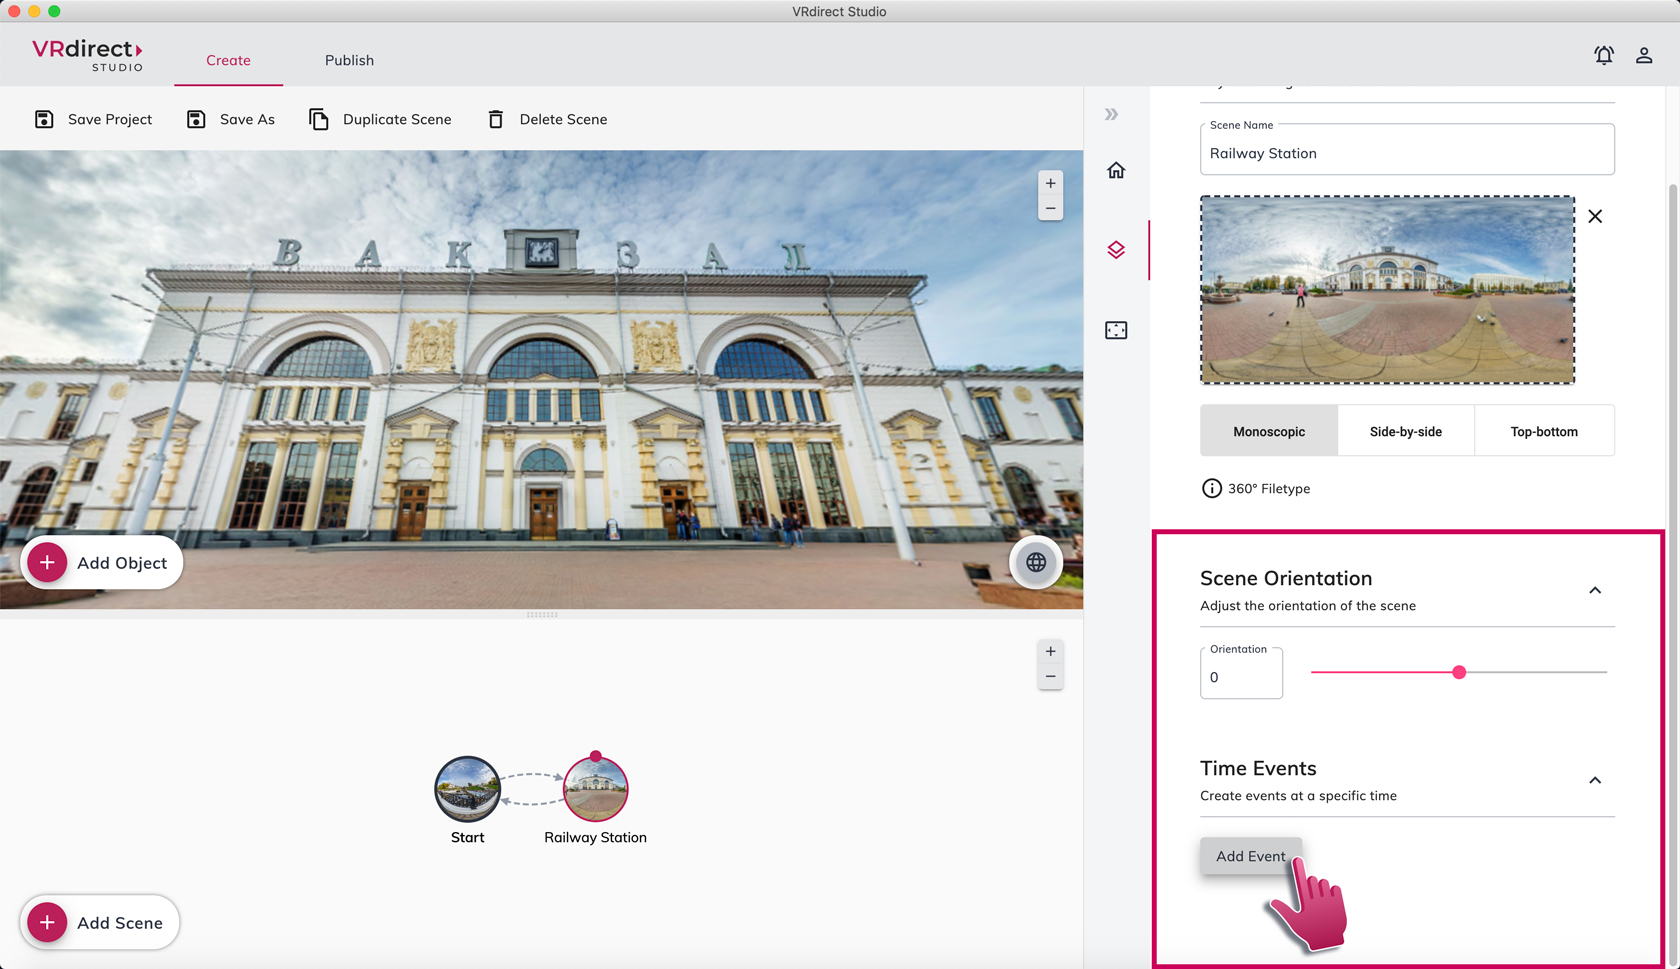 New feature in VRdirect Studio 2.2.0: Add external web links to your VR project and overcome software borders.